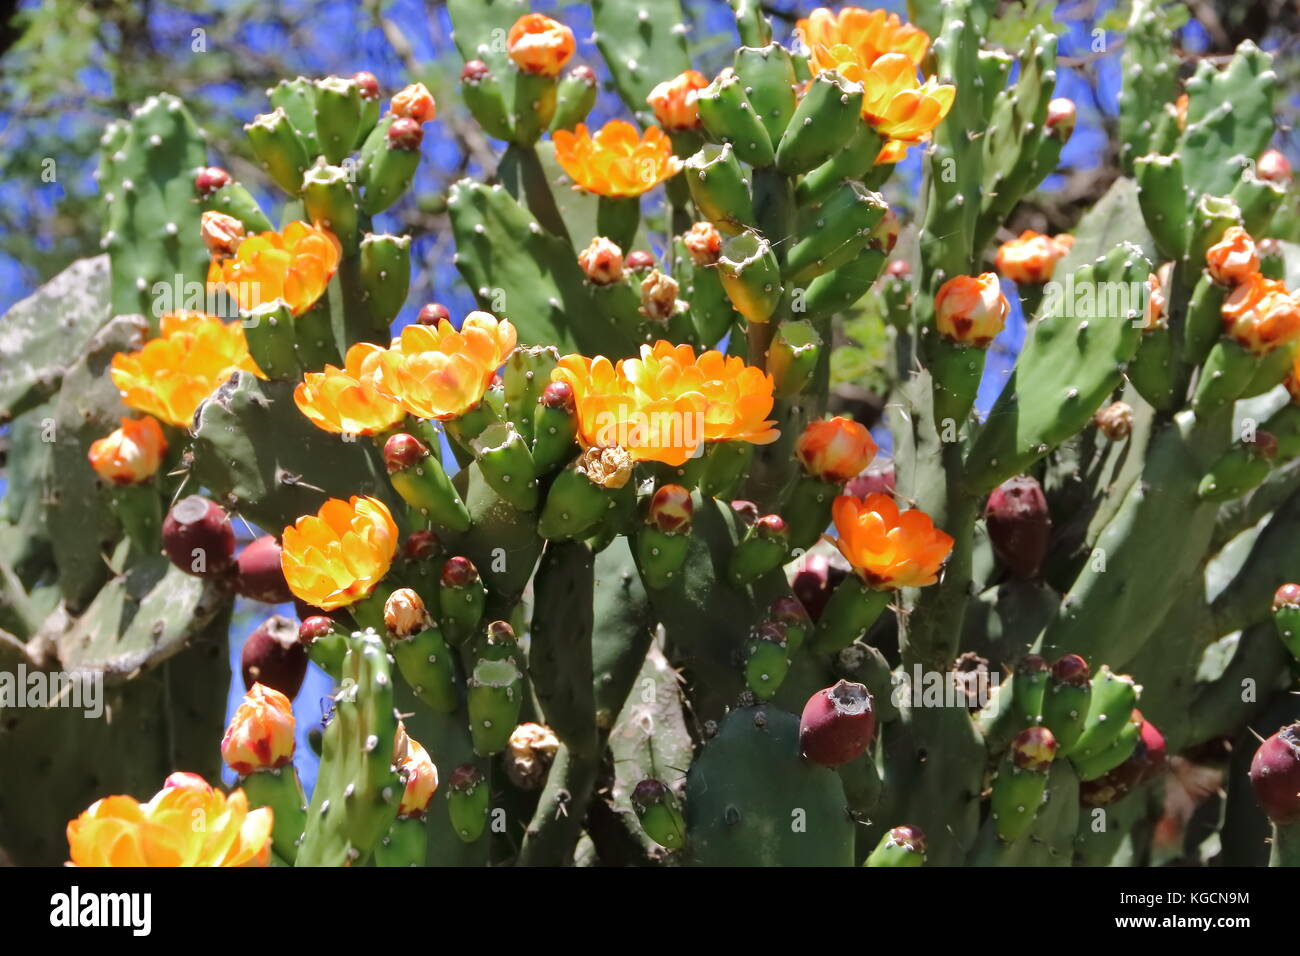 cactus and succulents with yellow flowers in spring - Stock Image